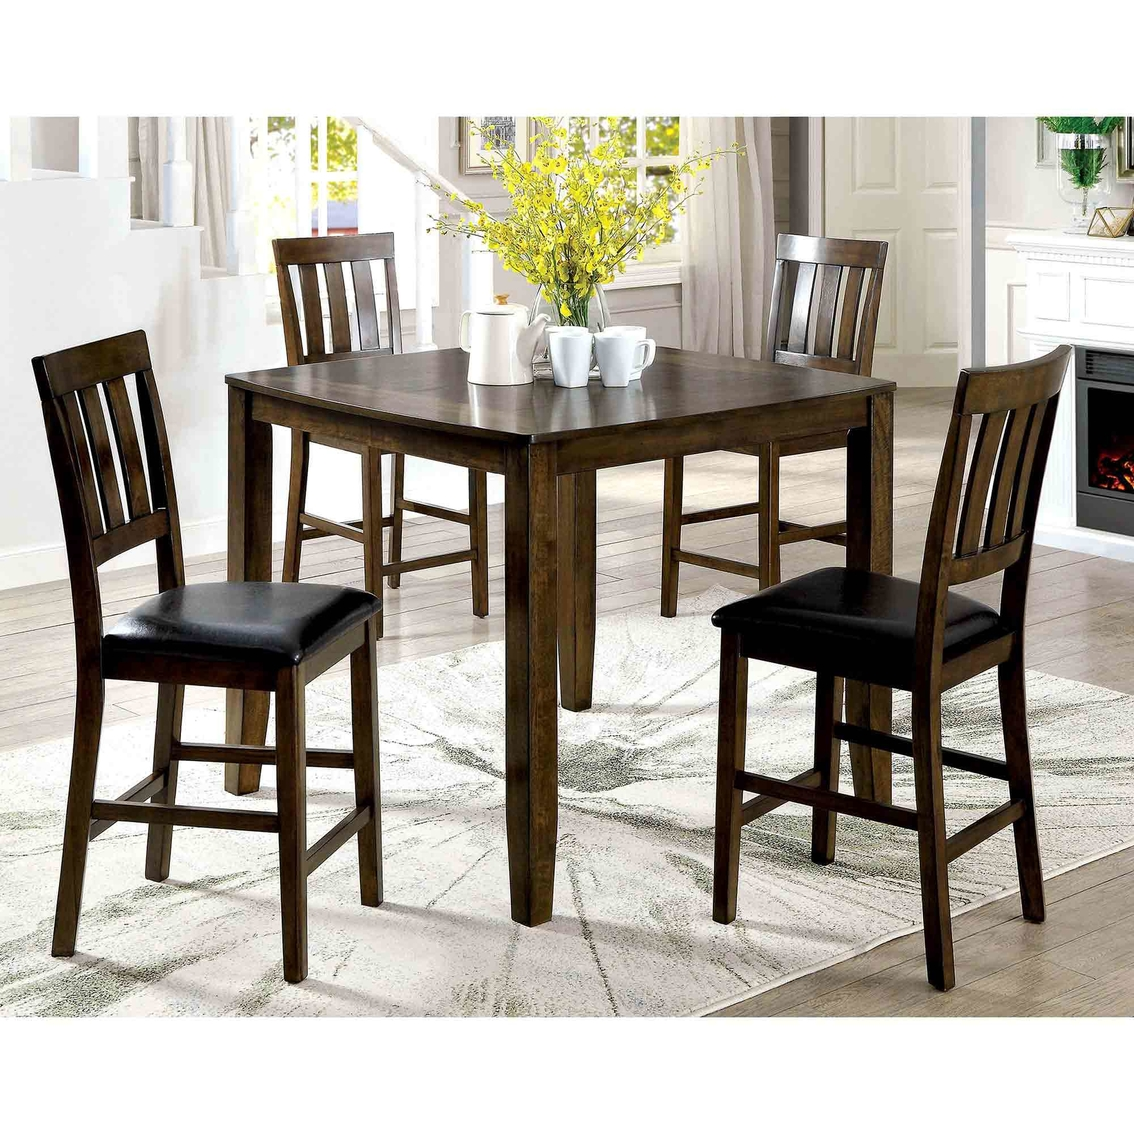 Room Store Chandler: Furniture Of America Chandler 5 Pc. Pub Dining Set